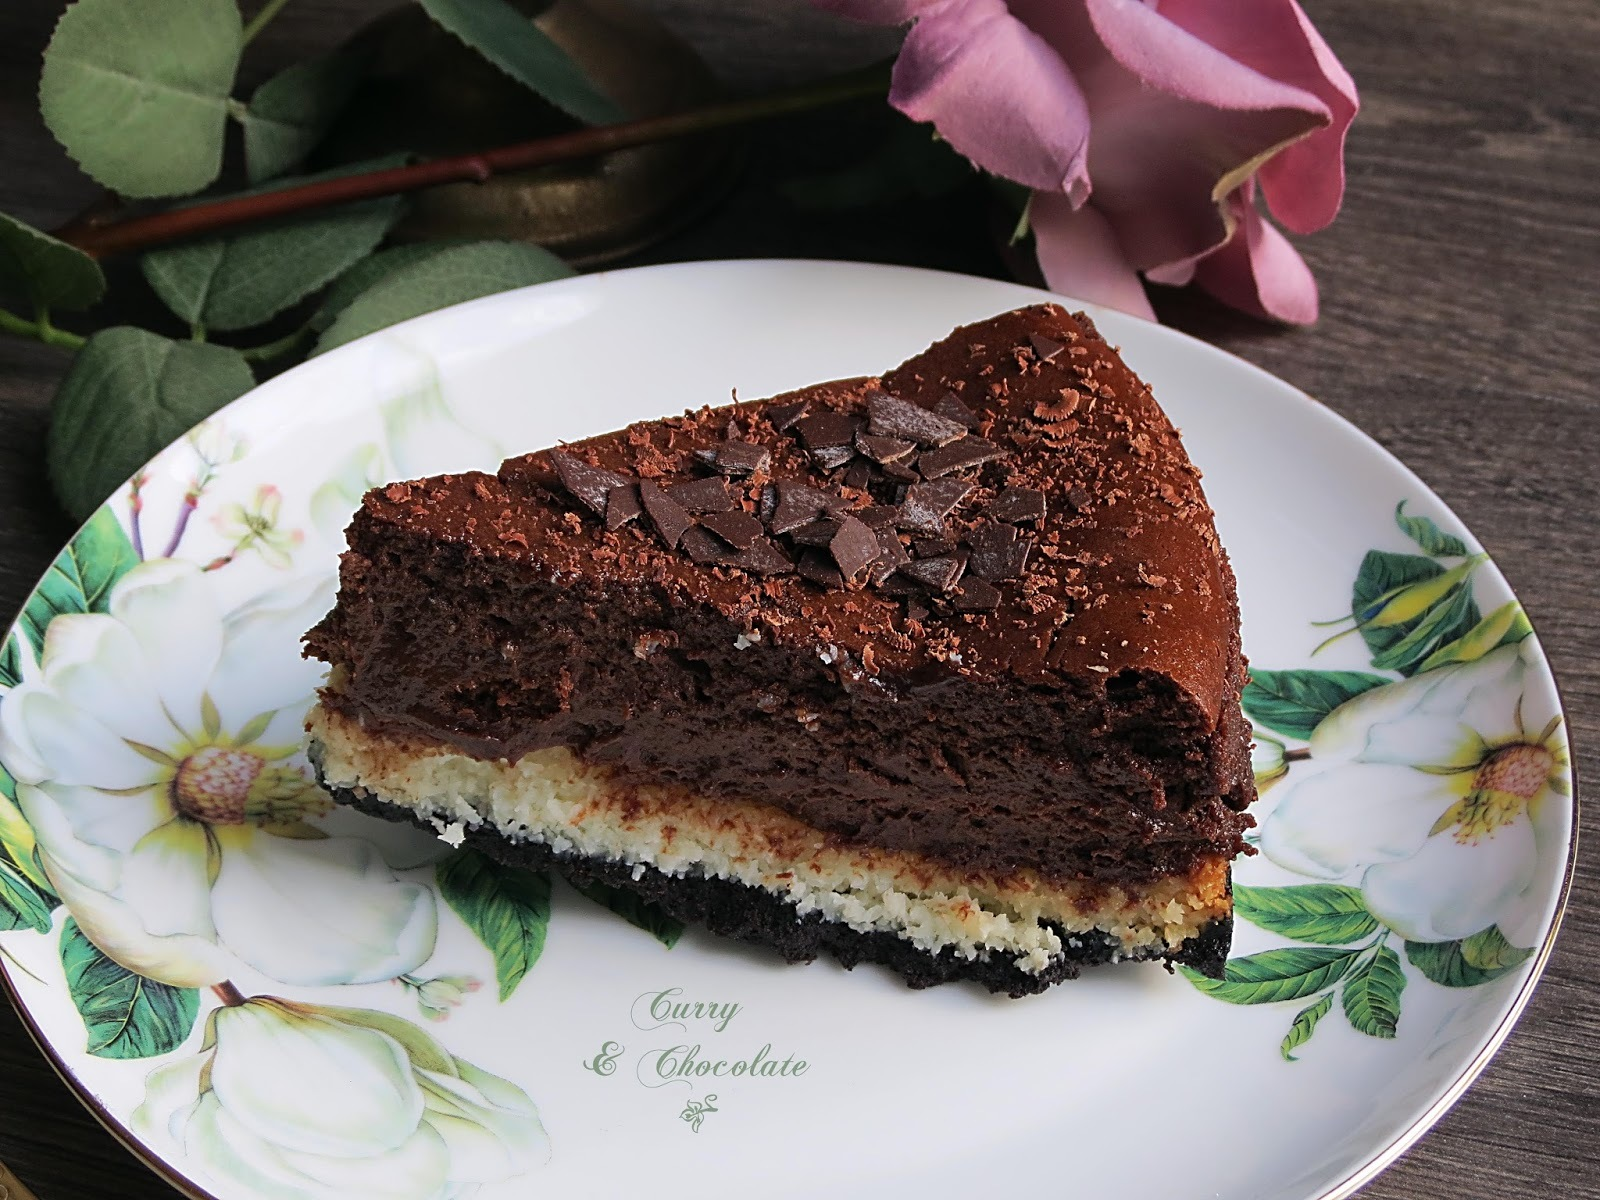 Tarta de queso con chocolate y coco – Coconut and chocolate cheesecake